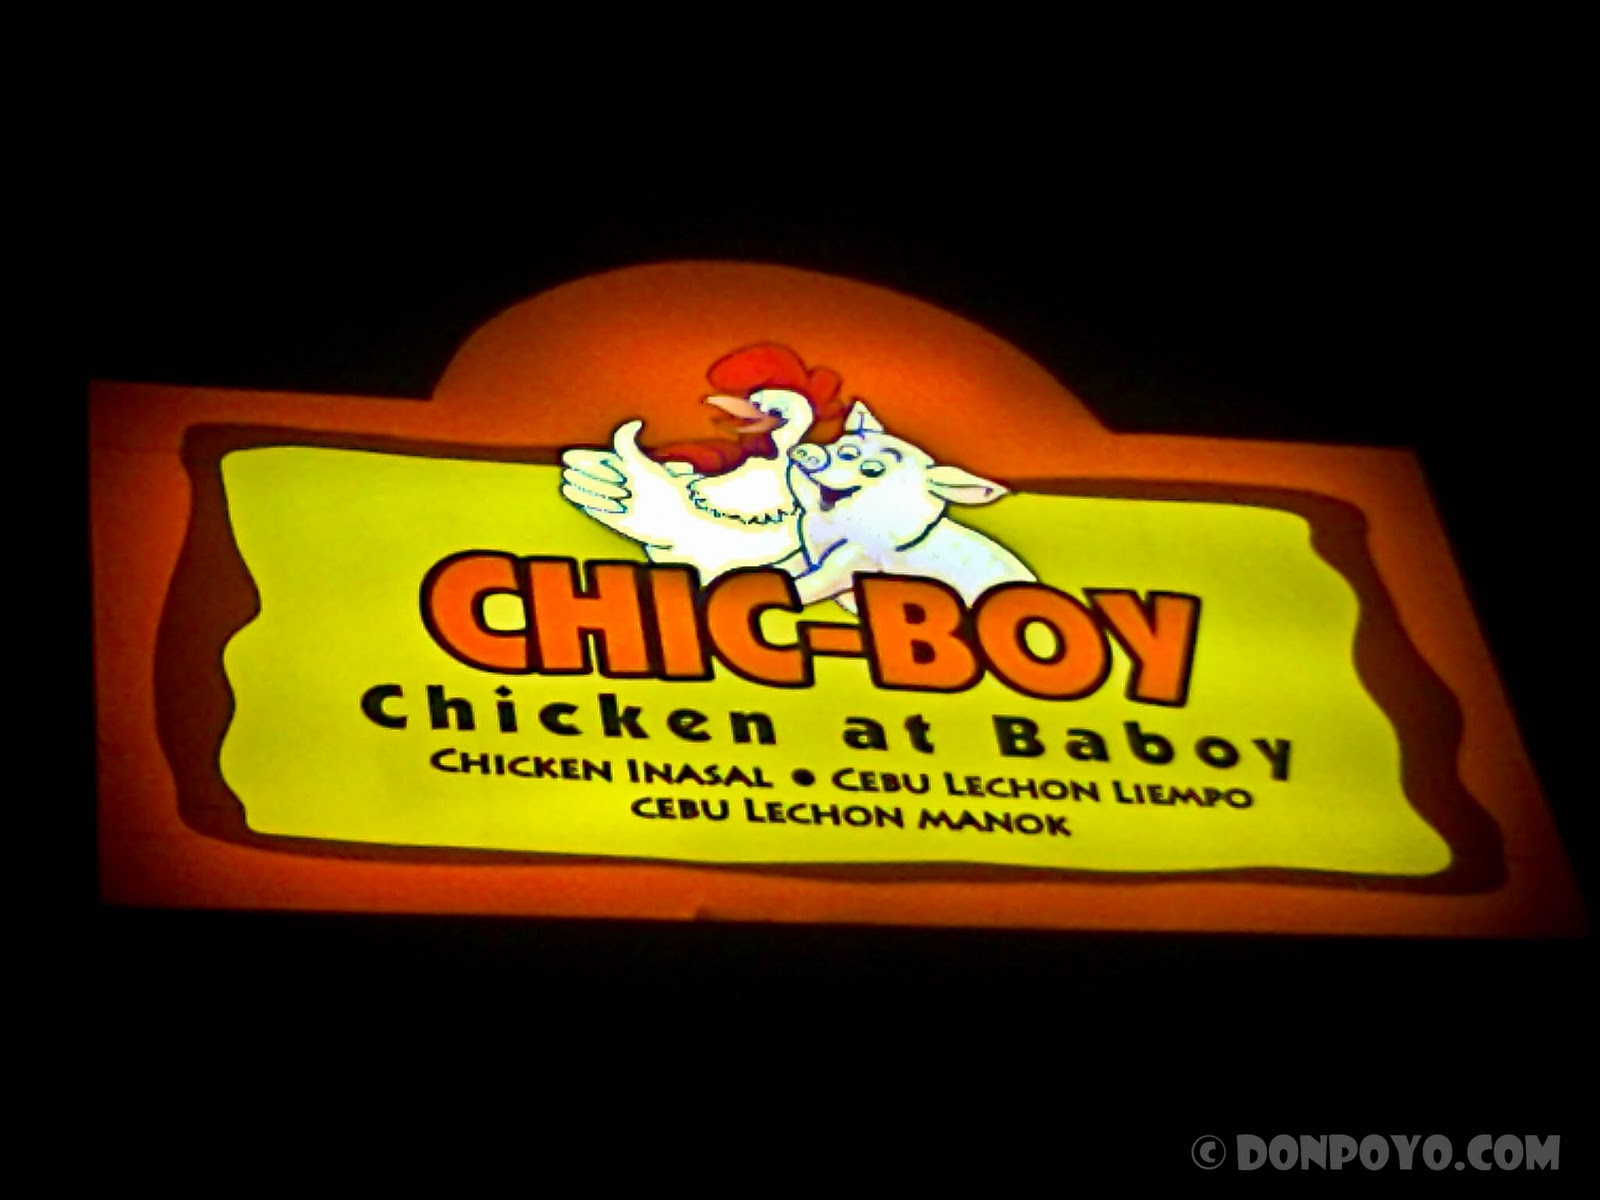 chic boy 44 reviews of chic-boy chicken baboy or bangus sisig why can't  filipinos be more clever with their chain names chic-boy short for chicken and .